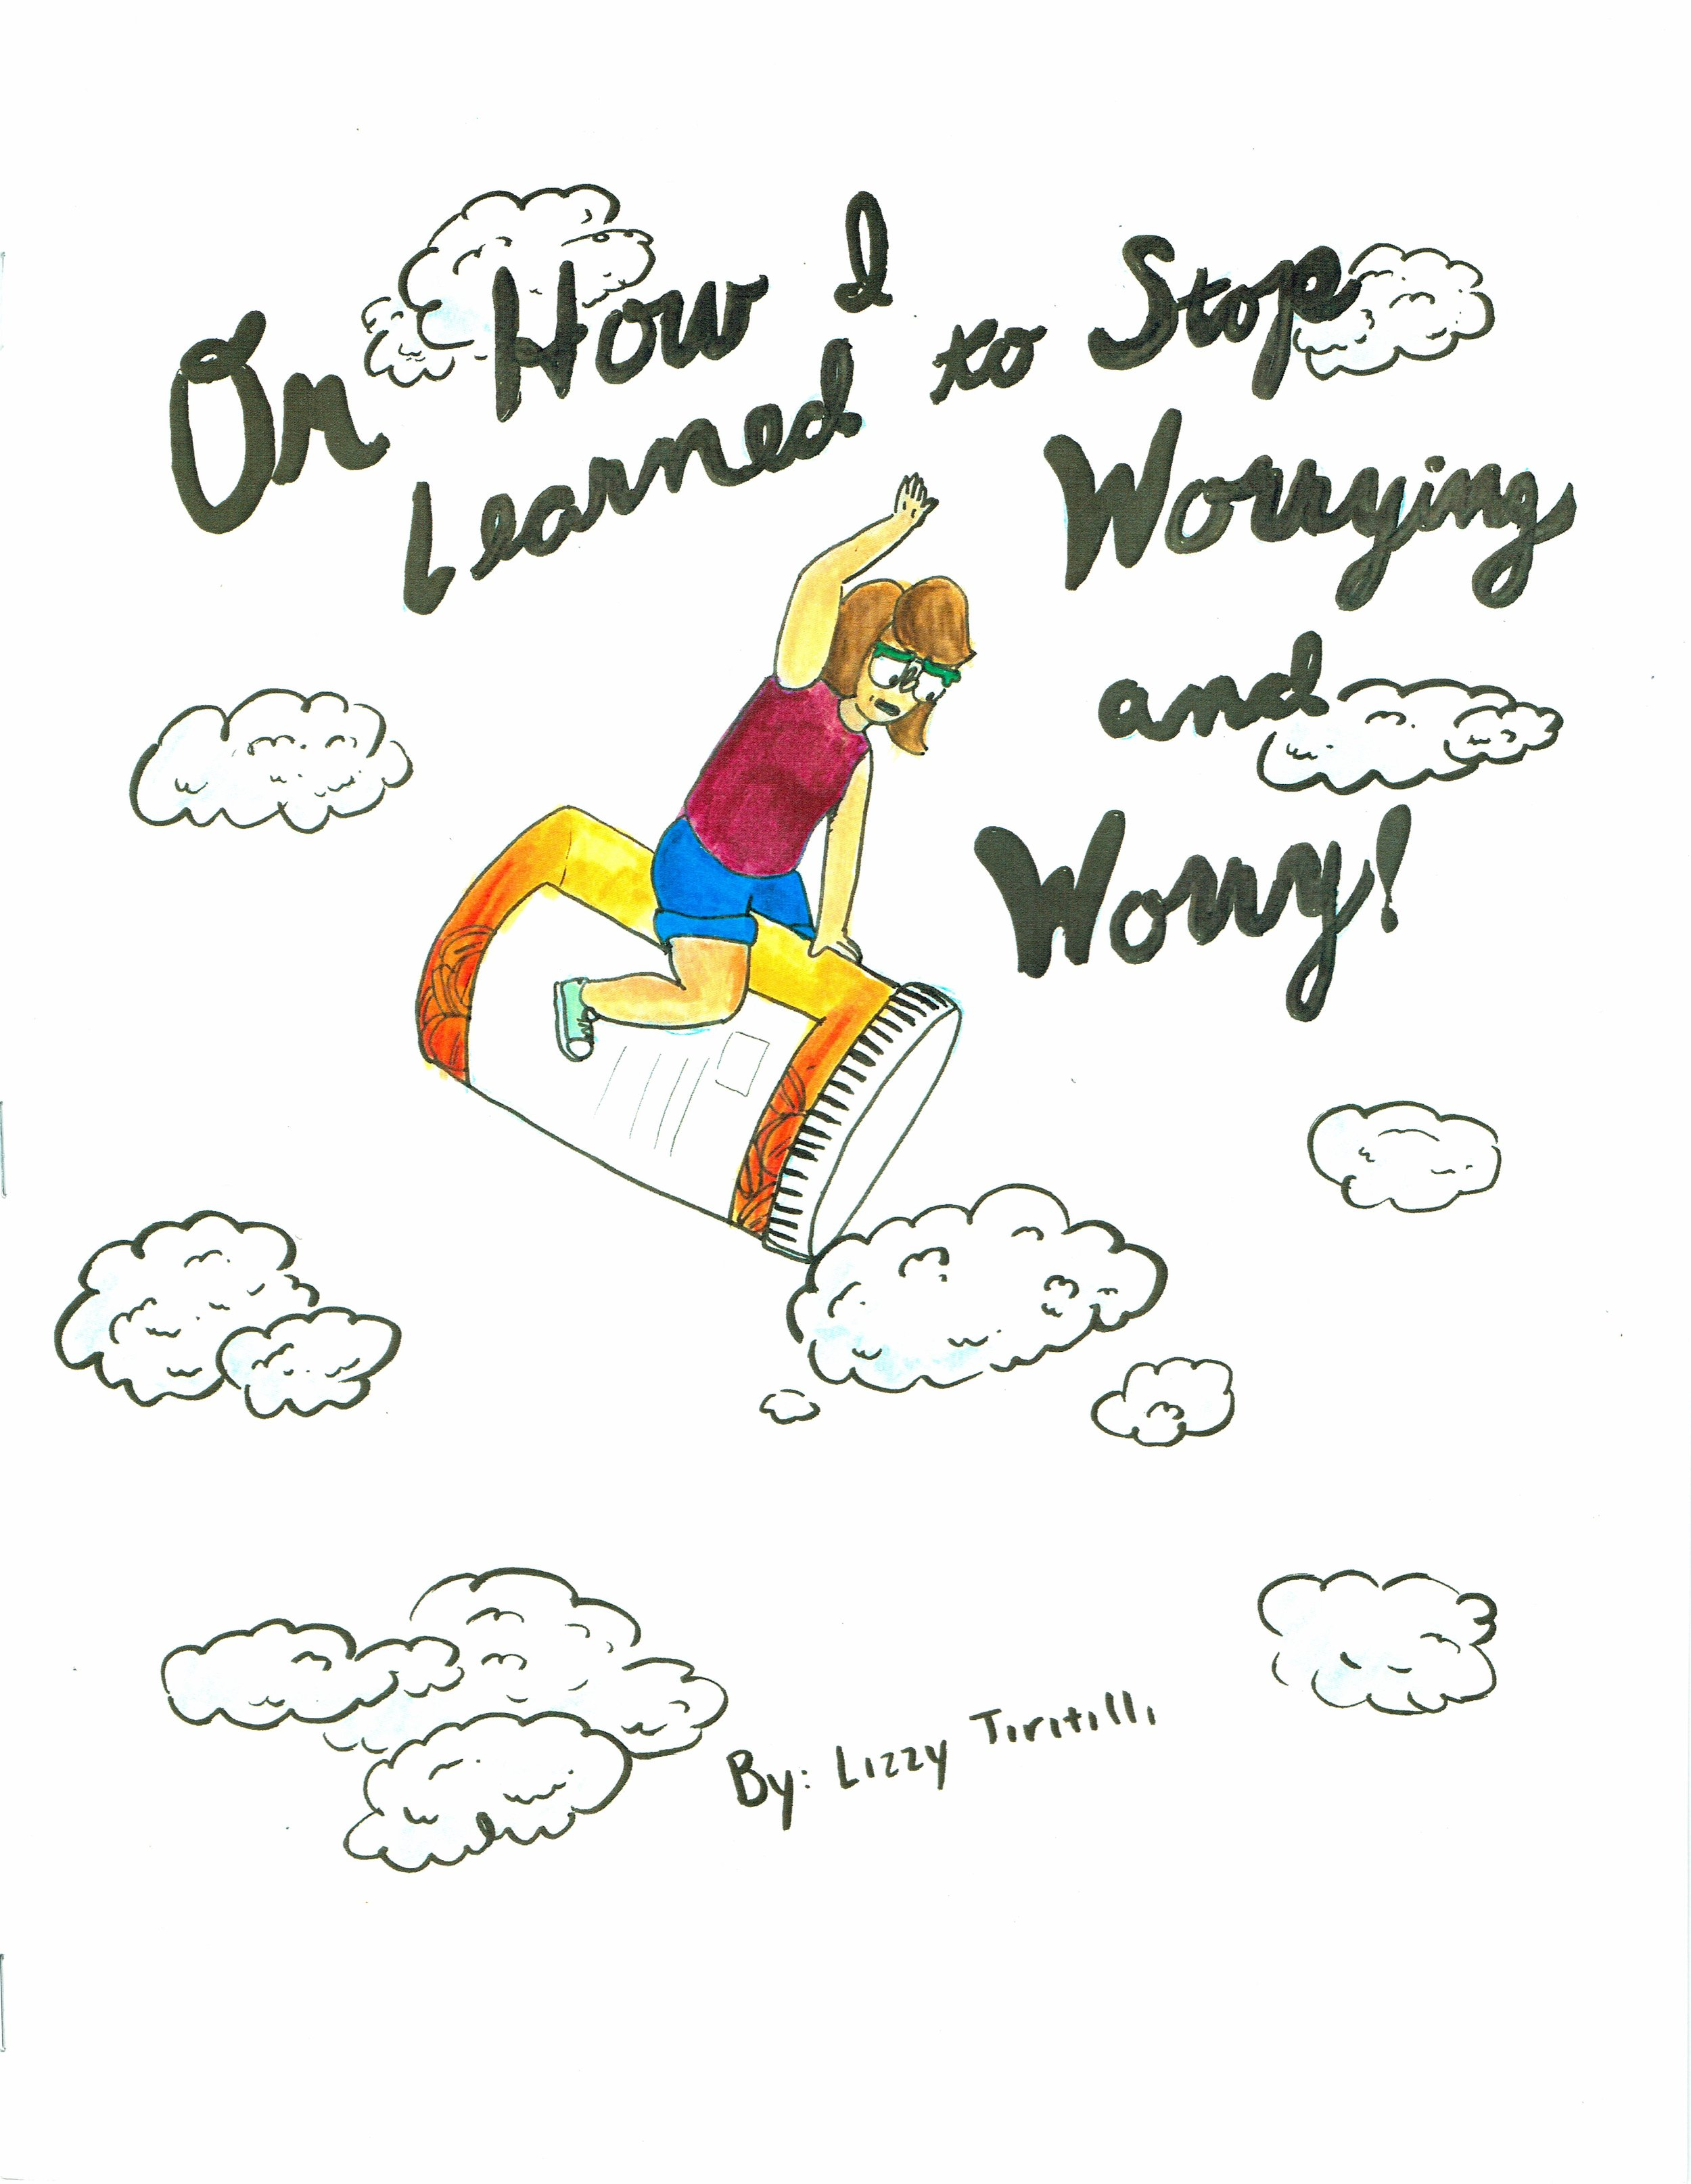 On How I Learned To Stop Worrying and Worry! by Lizzy Tiritilli at DINK 2017.